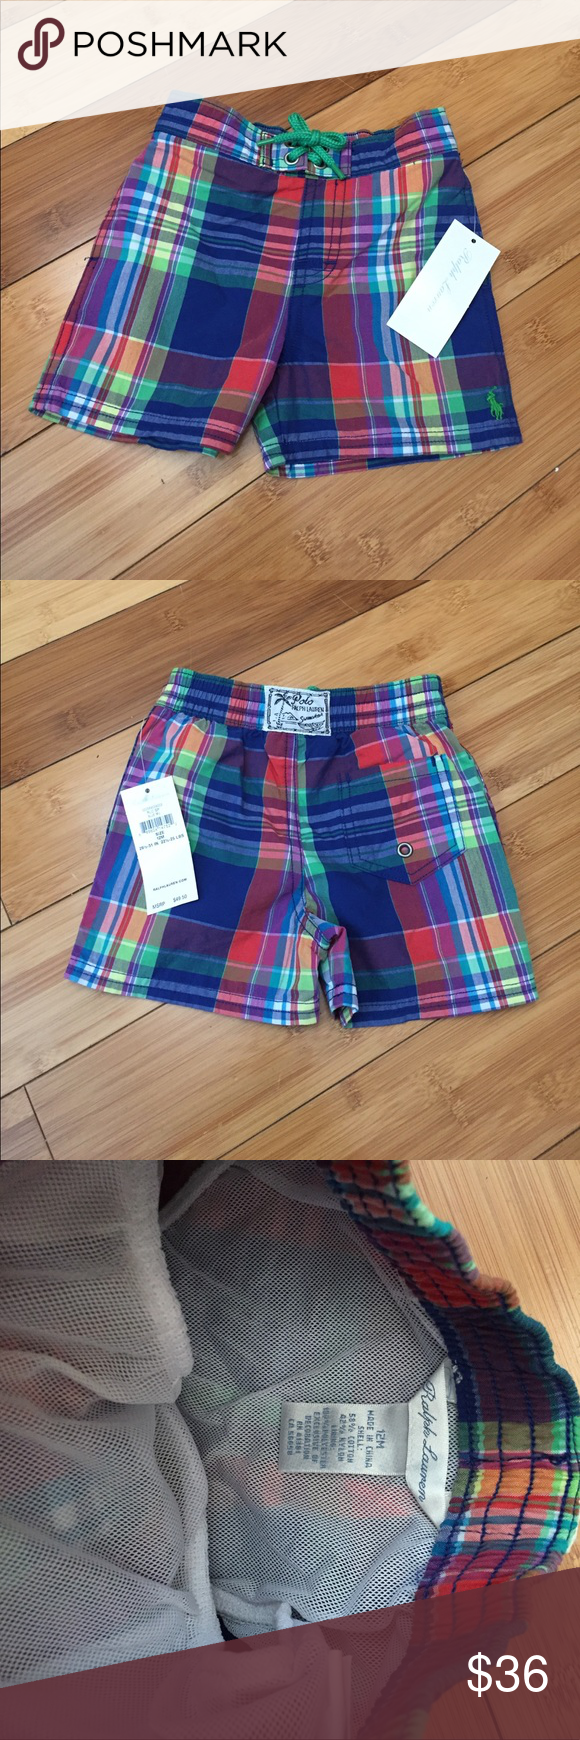 NWT Ralph Lauren Swim Trunks - 12M New with tags! Super adorable and preppy Ralph Lauren swim trunks. Colorful plaid, size 12 months. Inner lining for swim/water play. Ralph Lauren Swim Swim Trunks